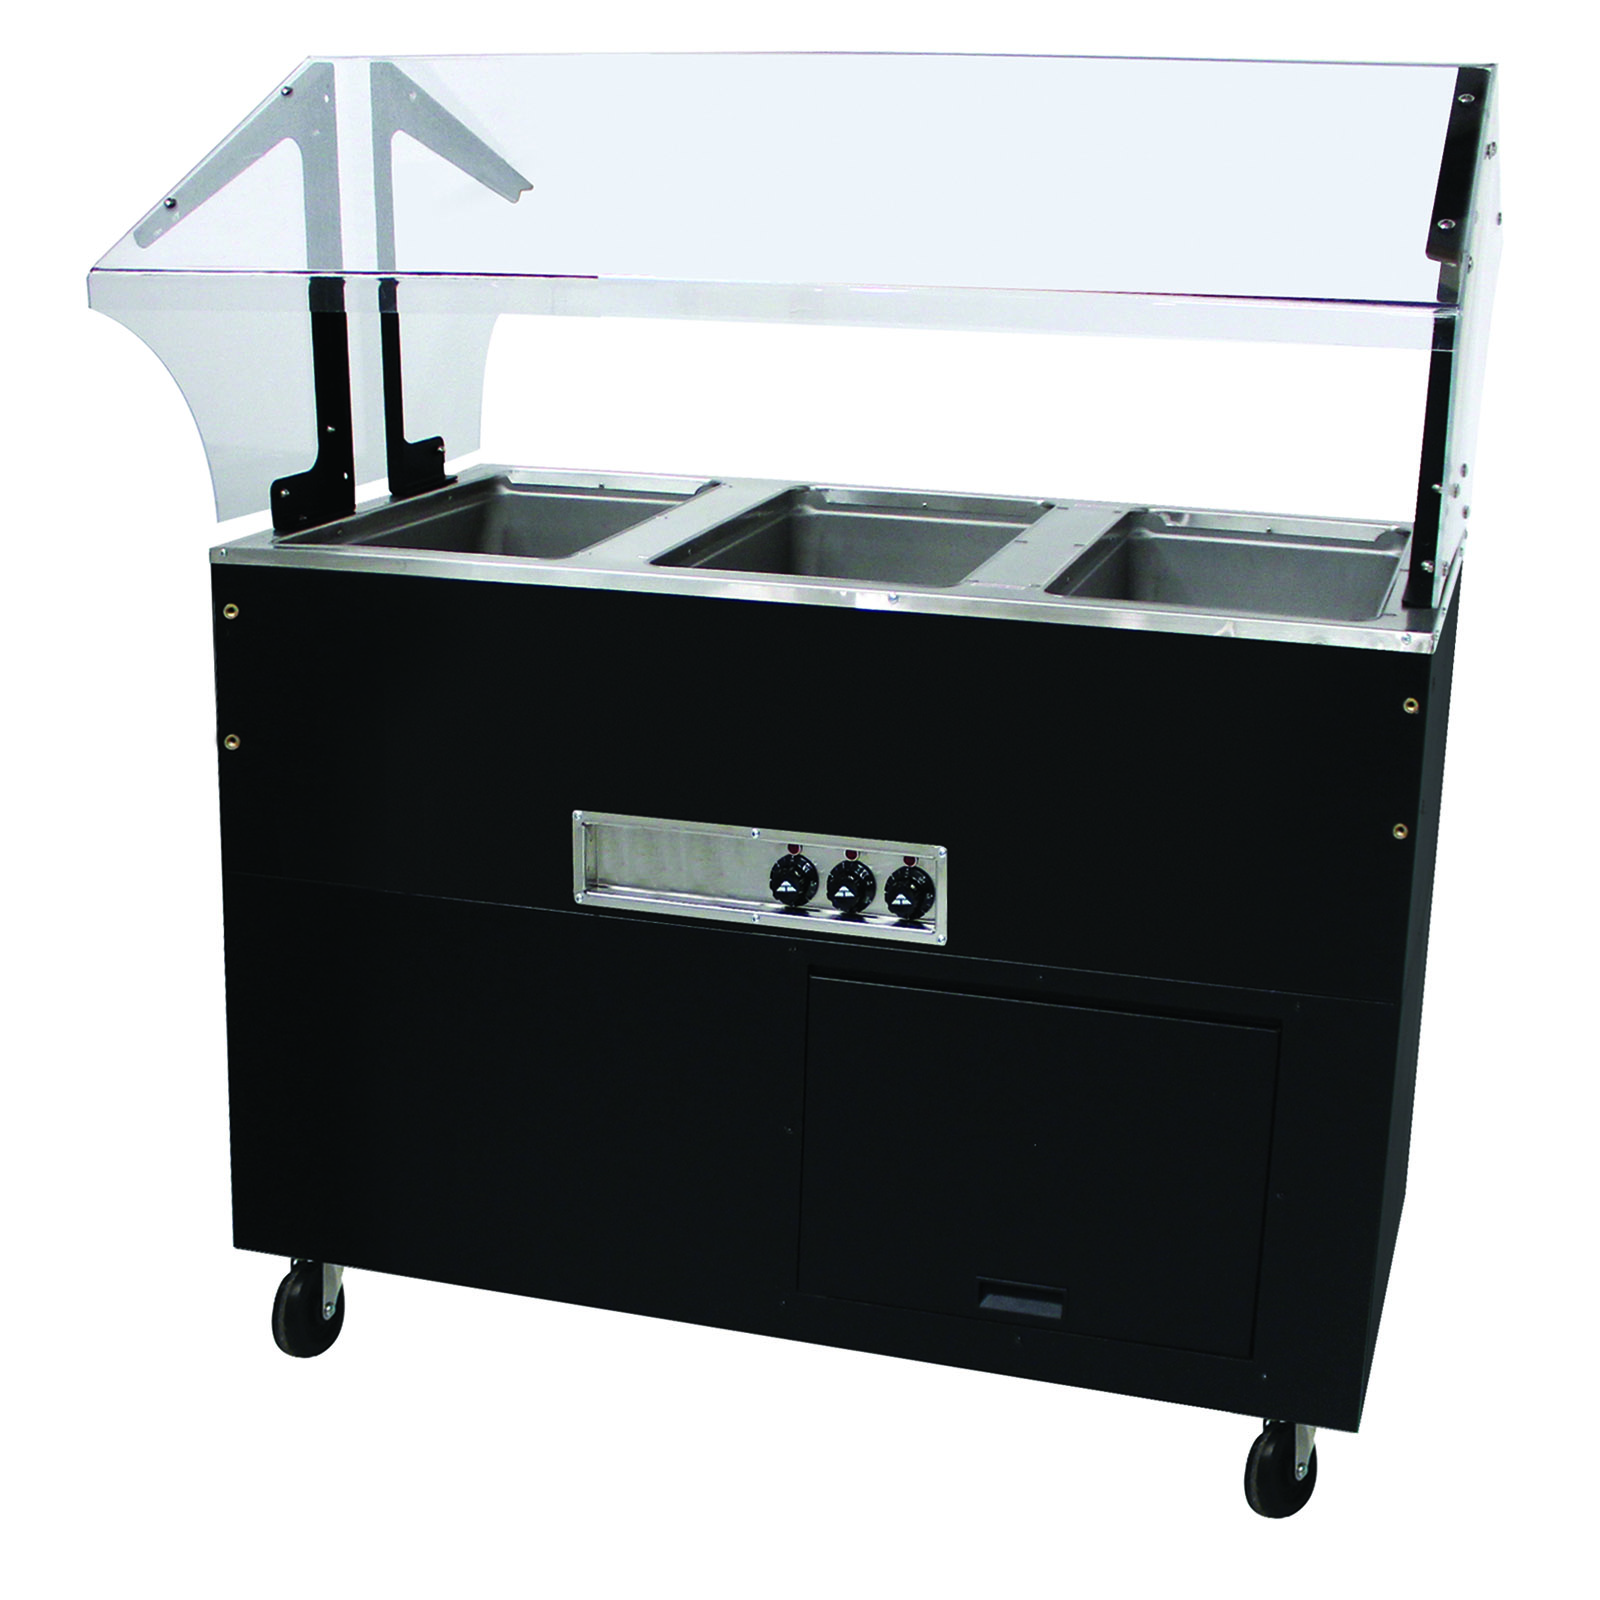 Advance Tabco BSW3-240-B-SB serving counter, hot food, electric